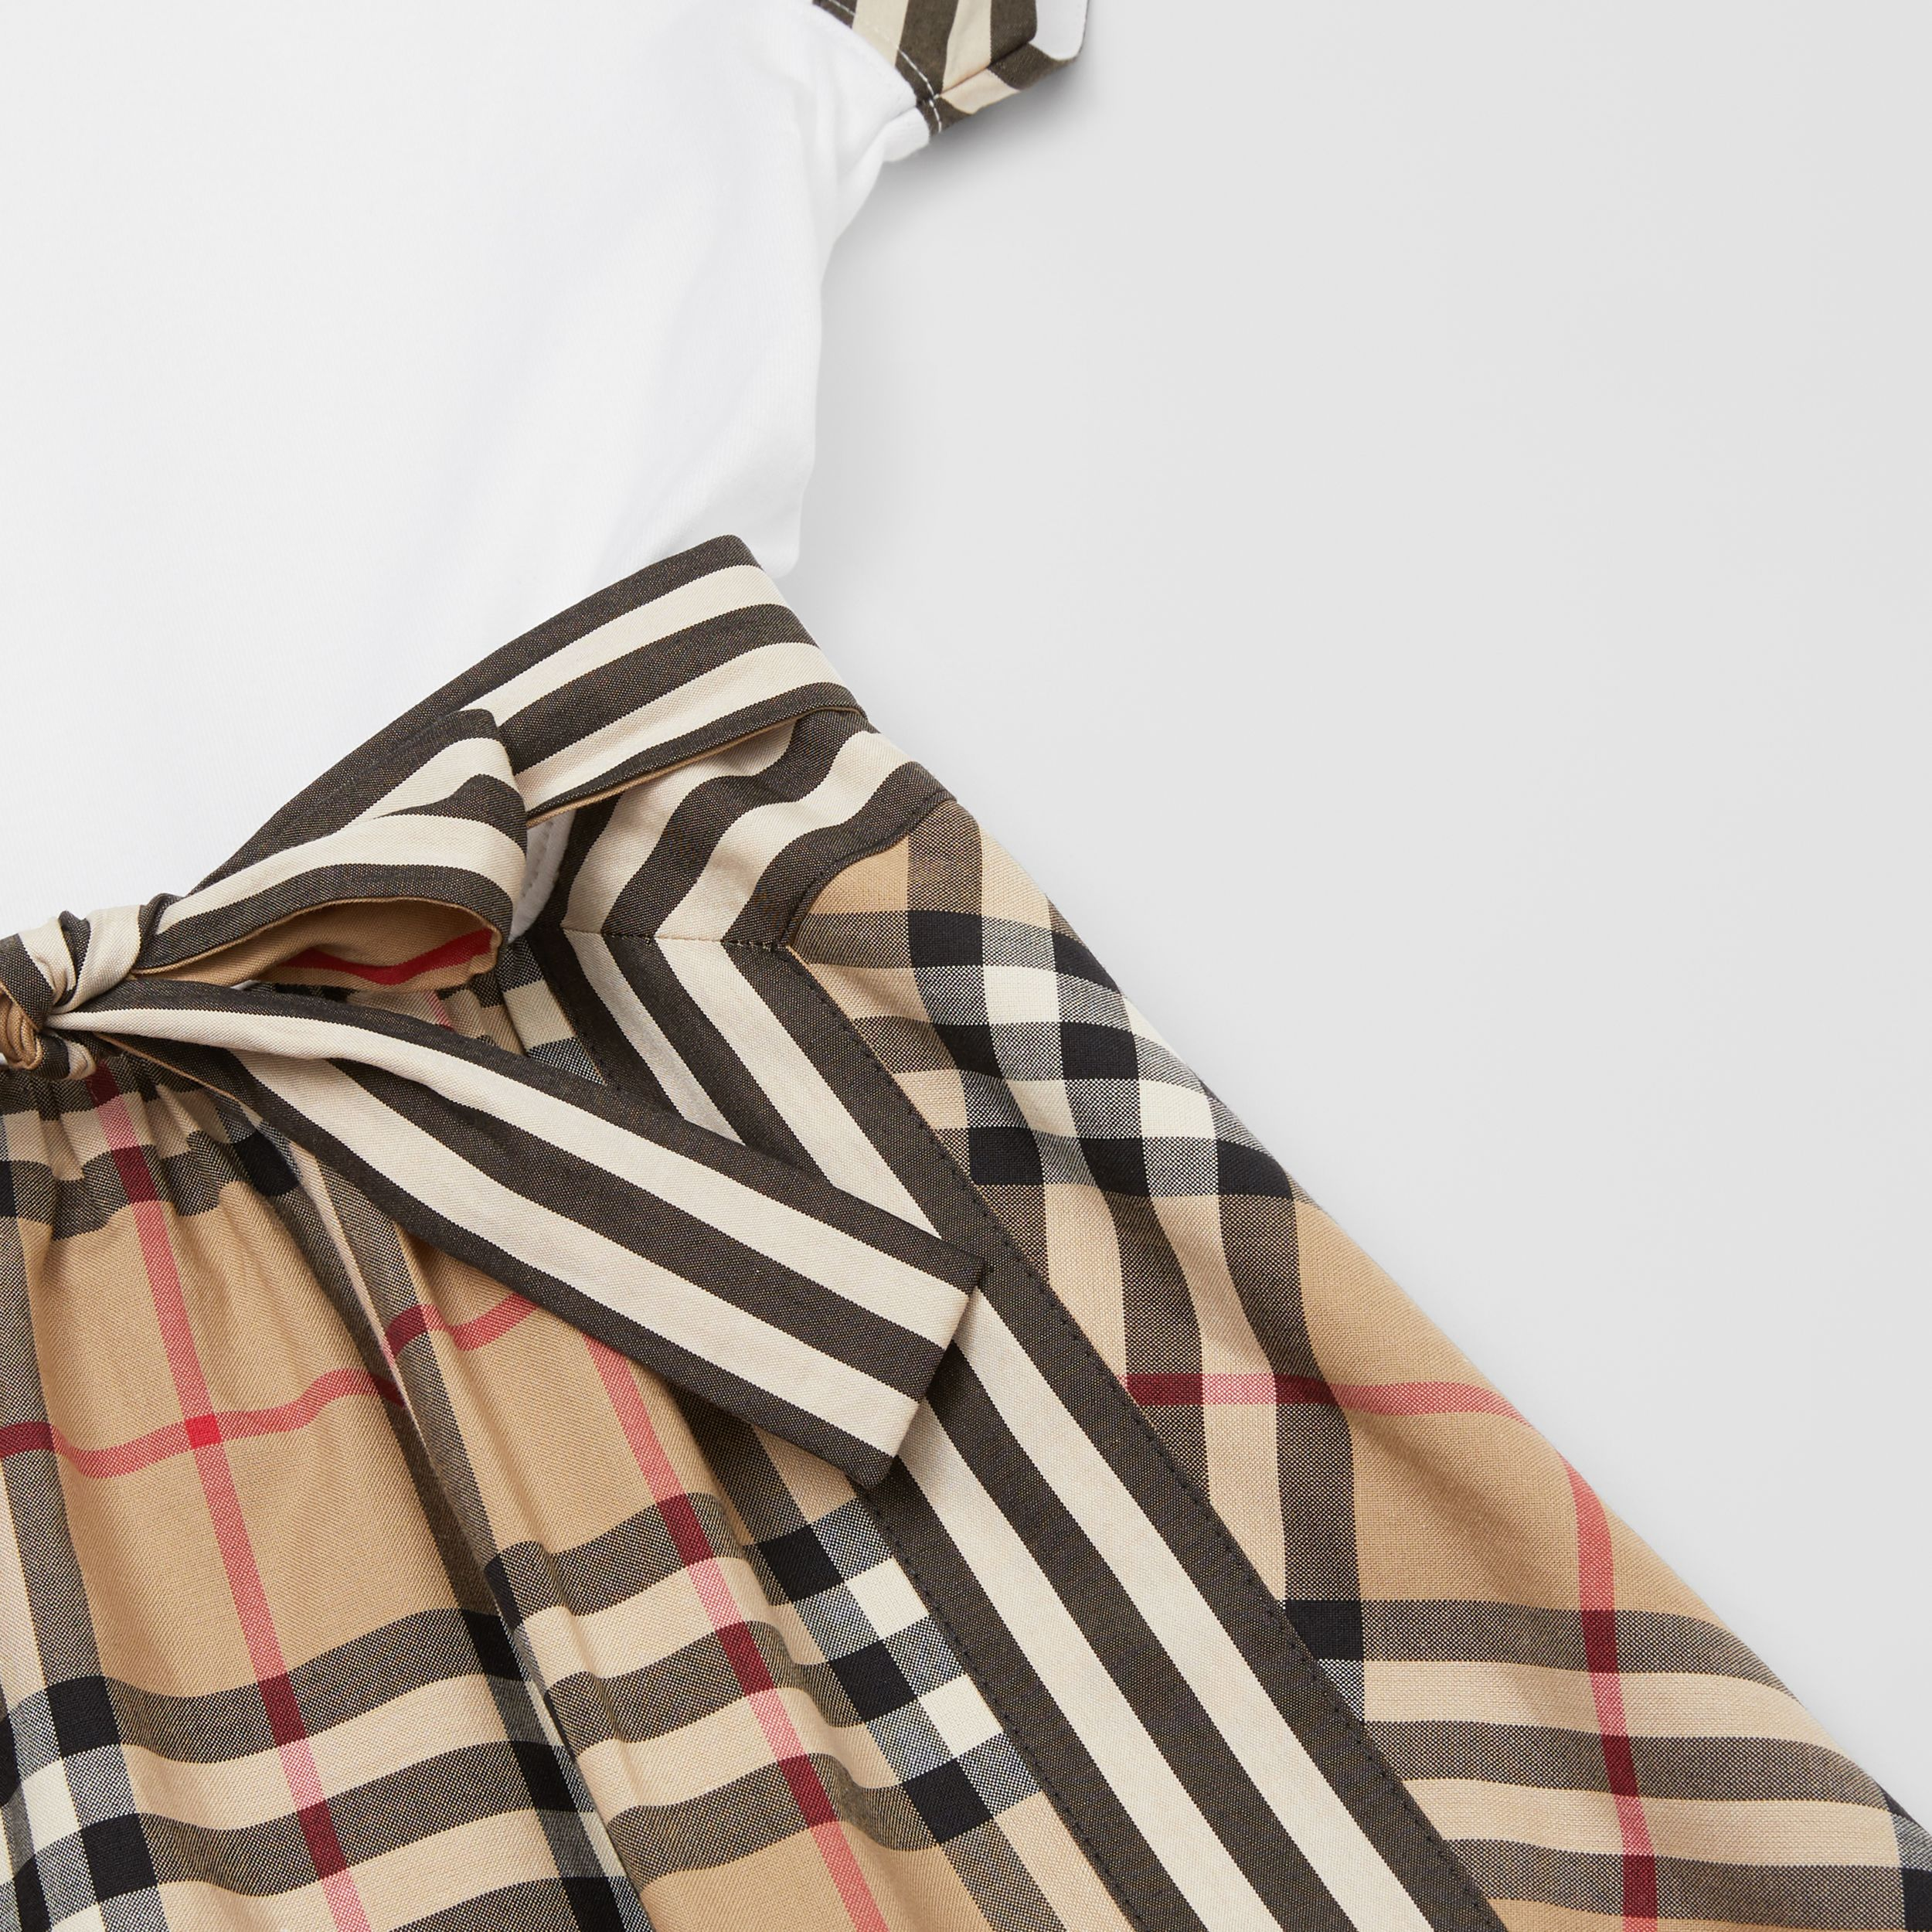 Vintage Check Detail Cotton Dress in Archive Beige | Burberry - 2